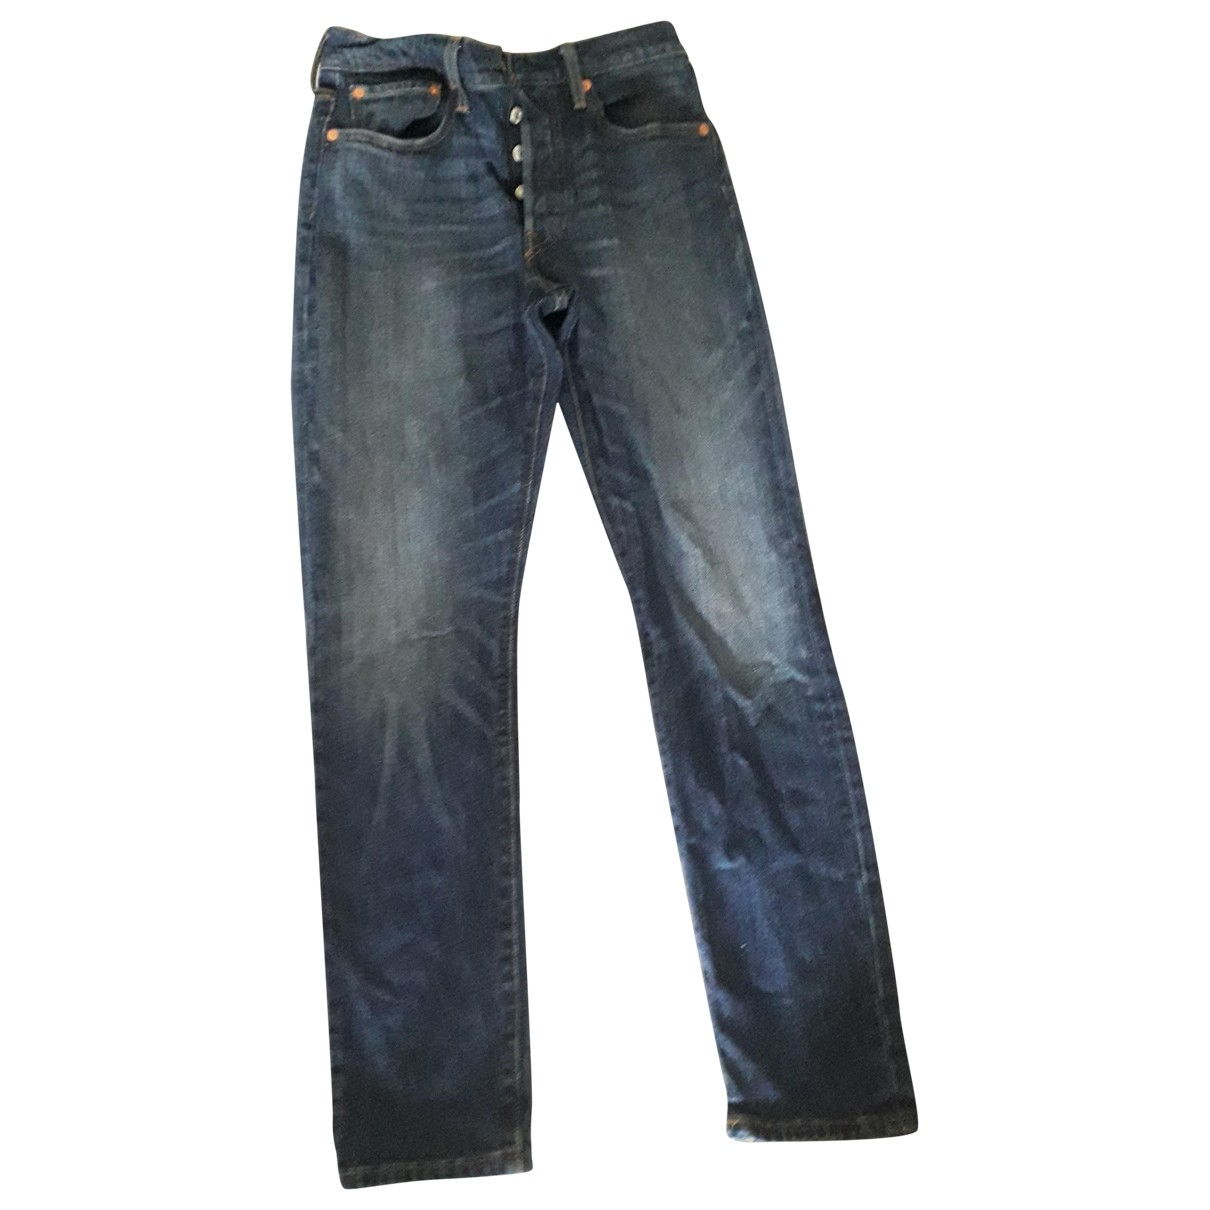 Levi's 501 Navy Cotton - elasthane Jeans for Women 26 US